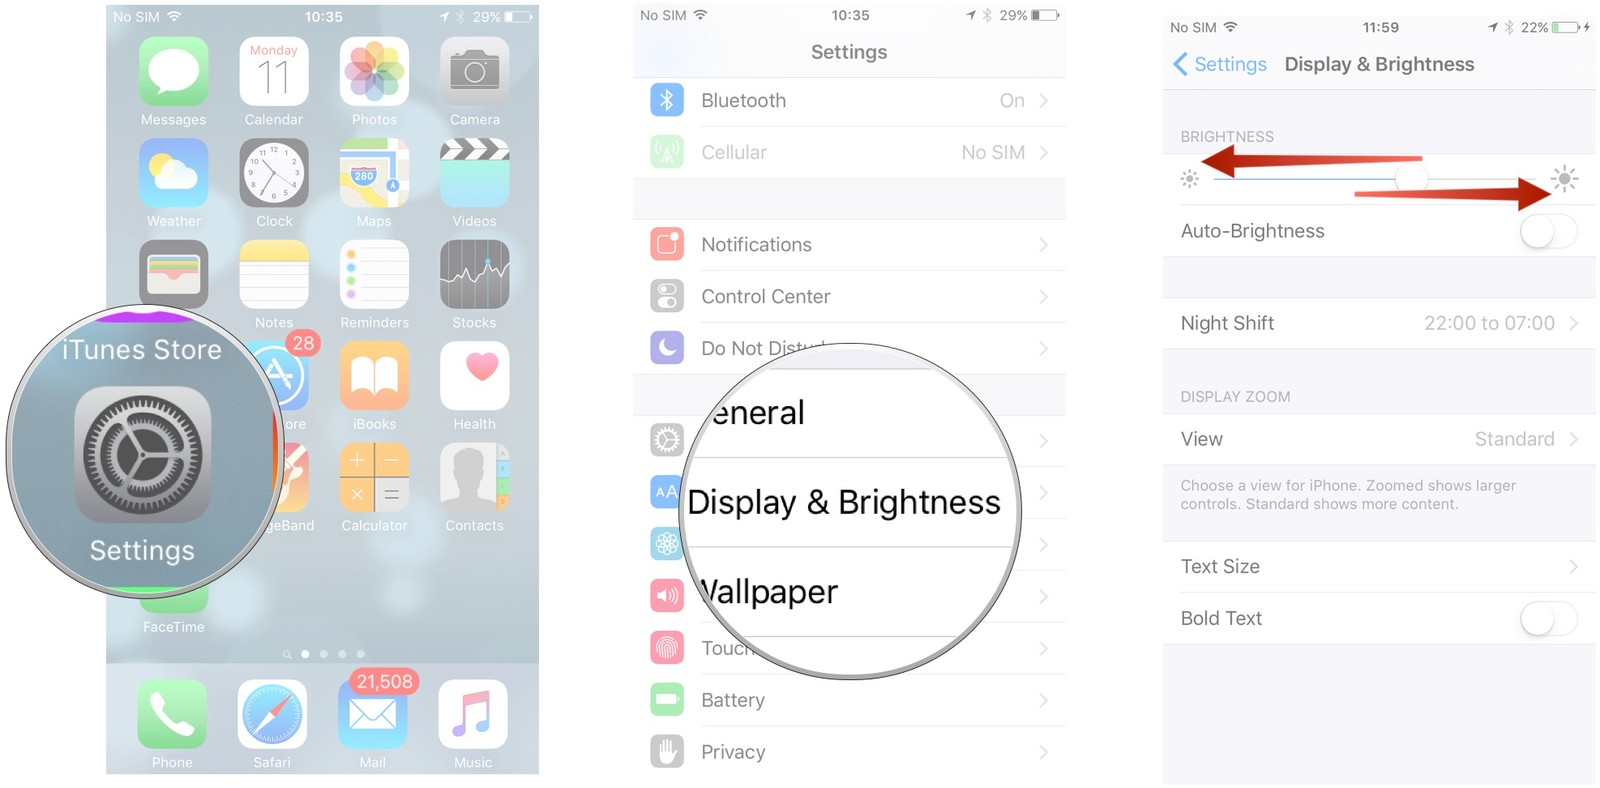 How to make the screen brighter 89